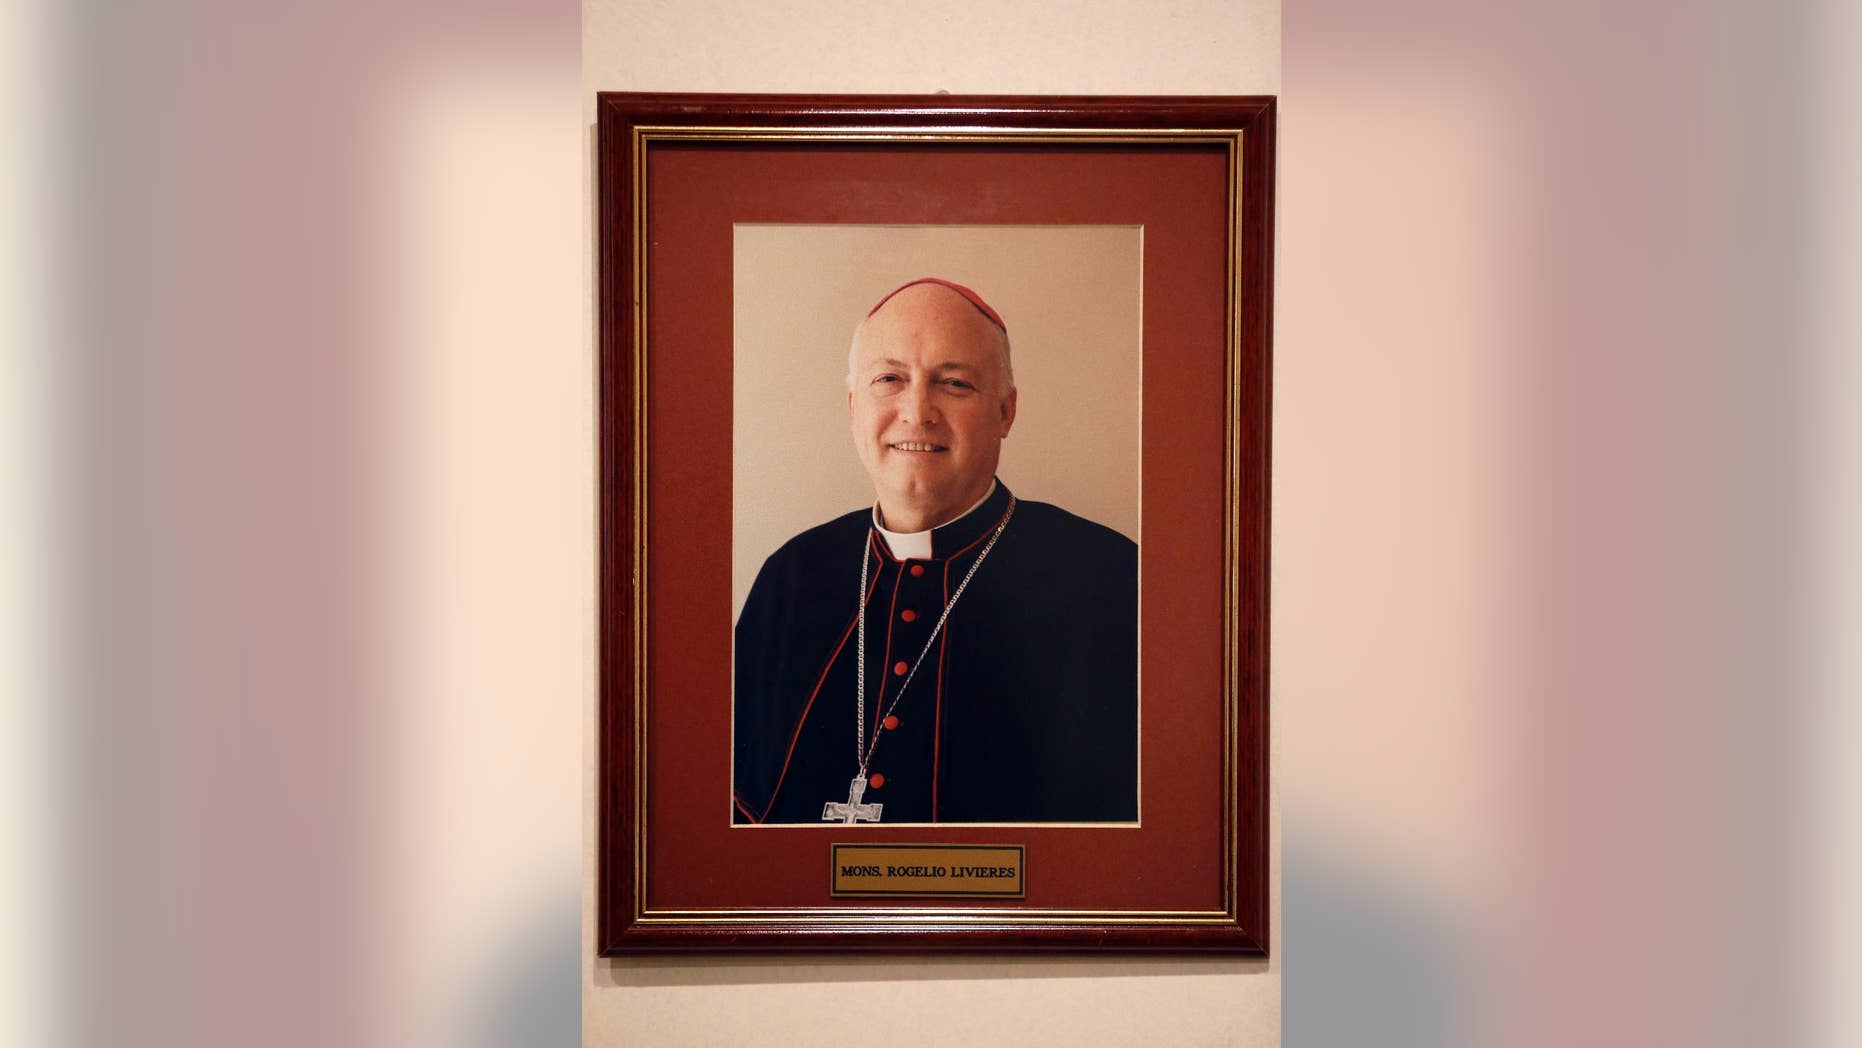 FILE - This May 13, 2015 file photo shows a framed portrait of the ousted Bishop Rogelio Livieres Plano, that hangs on an office wall in Paraguay's Ciudad del Este diocese. The former Paraguayan bishop who was ousted by Pope Francis amid several controversies in his diocese has died of problems related to diabetes in a Buenos Aires hospital, Friday, Aug. 14, 2015. Livieres Plano was 69. (AP Photo/Jorge Saenz, File)